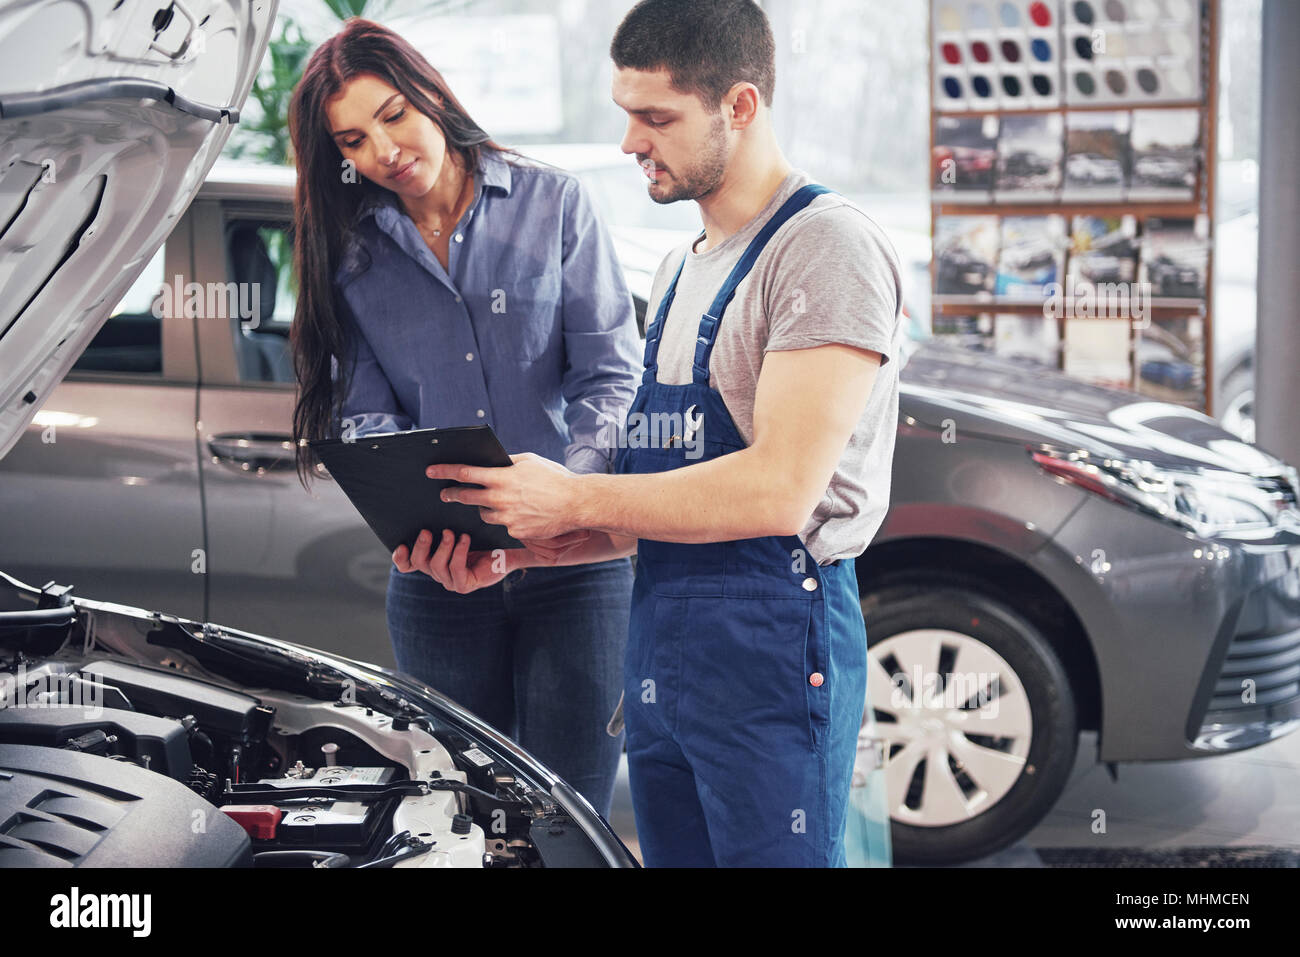 A man mechanic and woman customer discussing repairs done to her vehicle - Stock Image